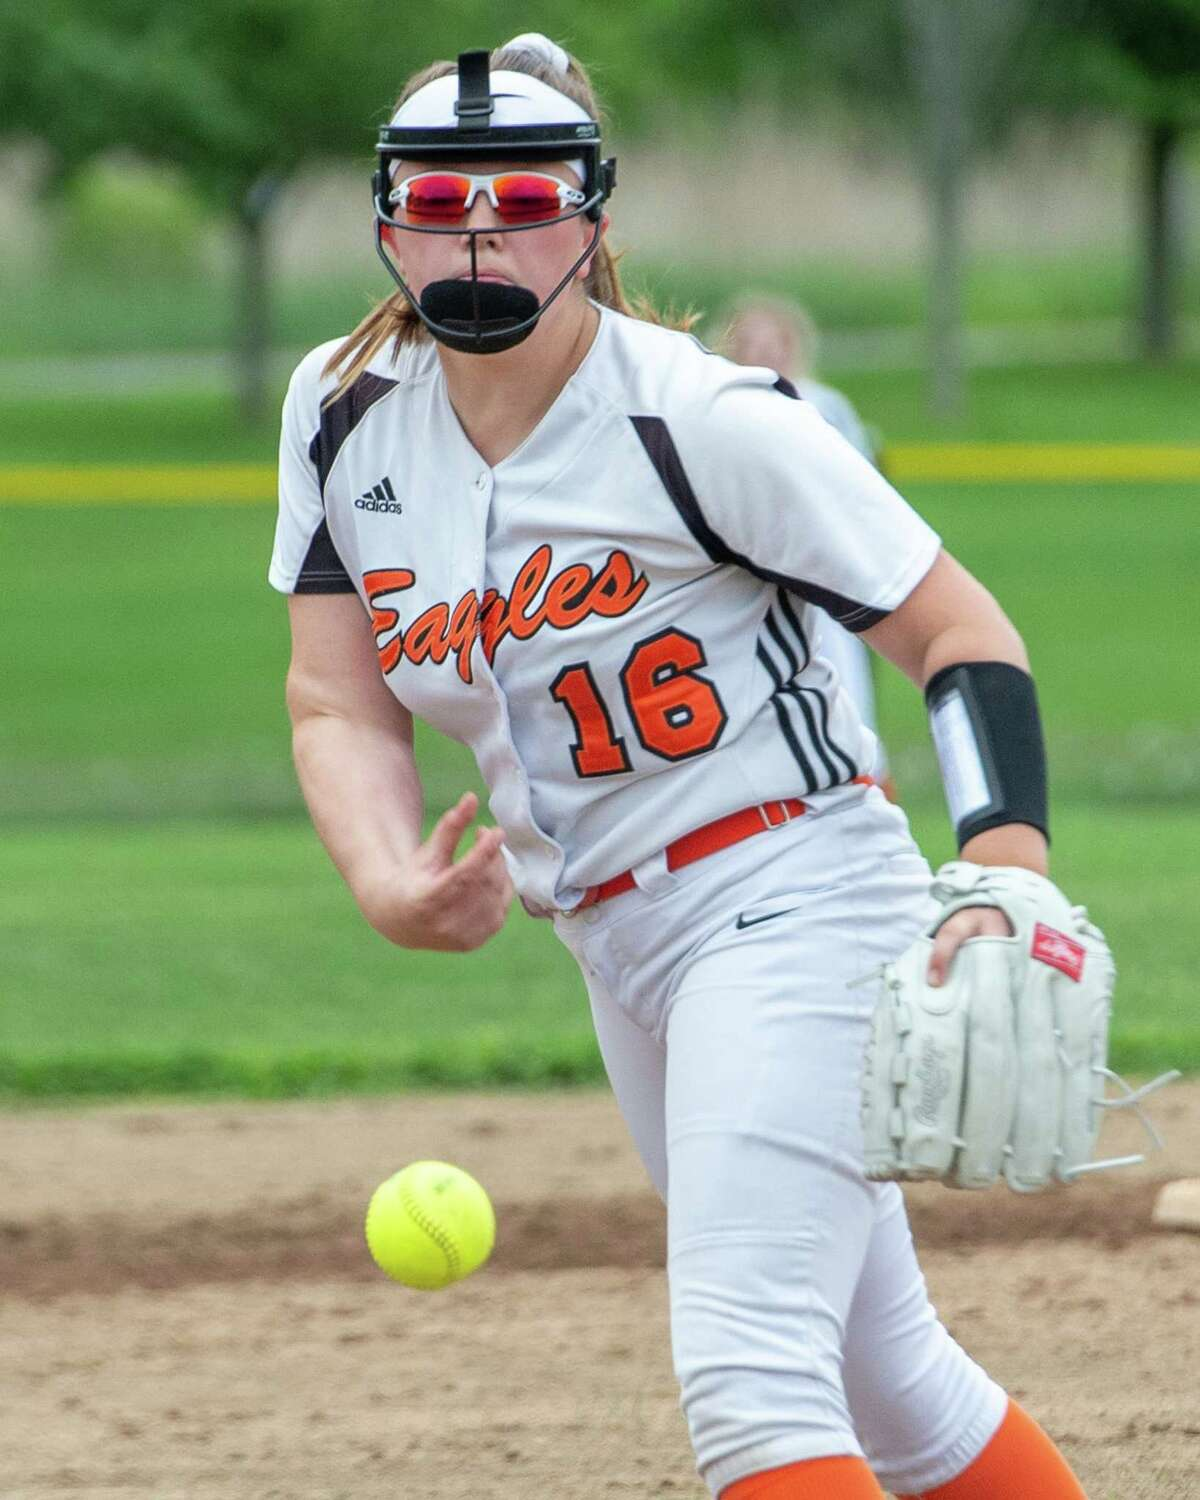 Bethlehem pitcher Anna Cleary during the Section II, Class AA quarterfinals against Guilderland at Bethlehem High School on Wednesday, May 29 2019. The experience that season has helped her this year, she said. (Jim Franco/Special to the Times Union.)